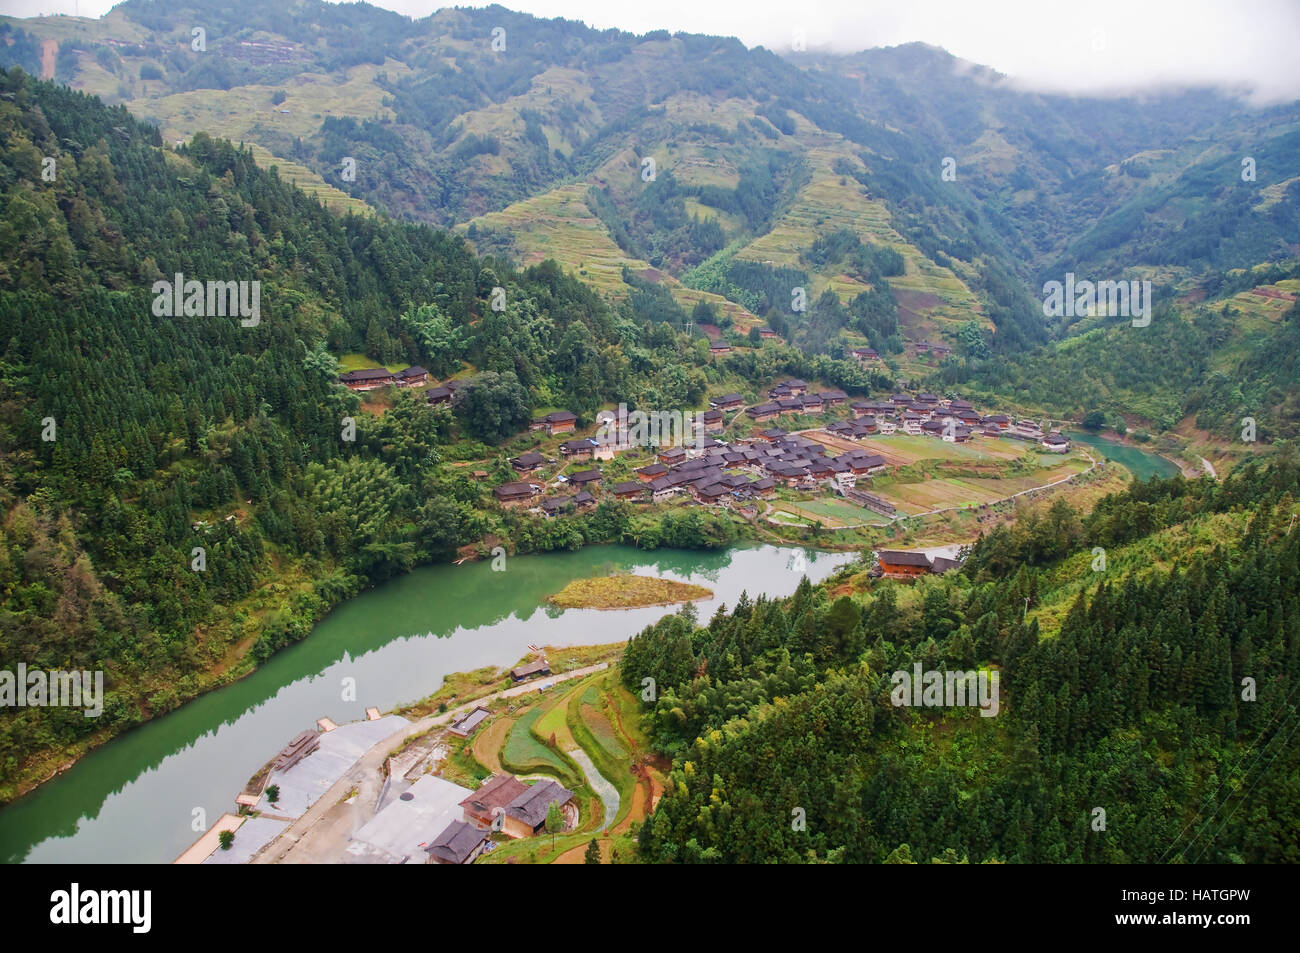 The Dong Village in Guizhou Province of China is an interesting cultural destination. Stock Photo